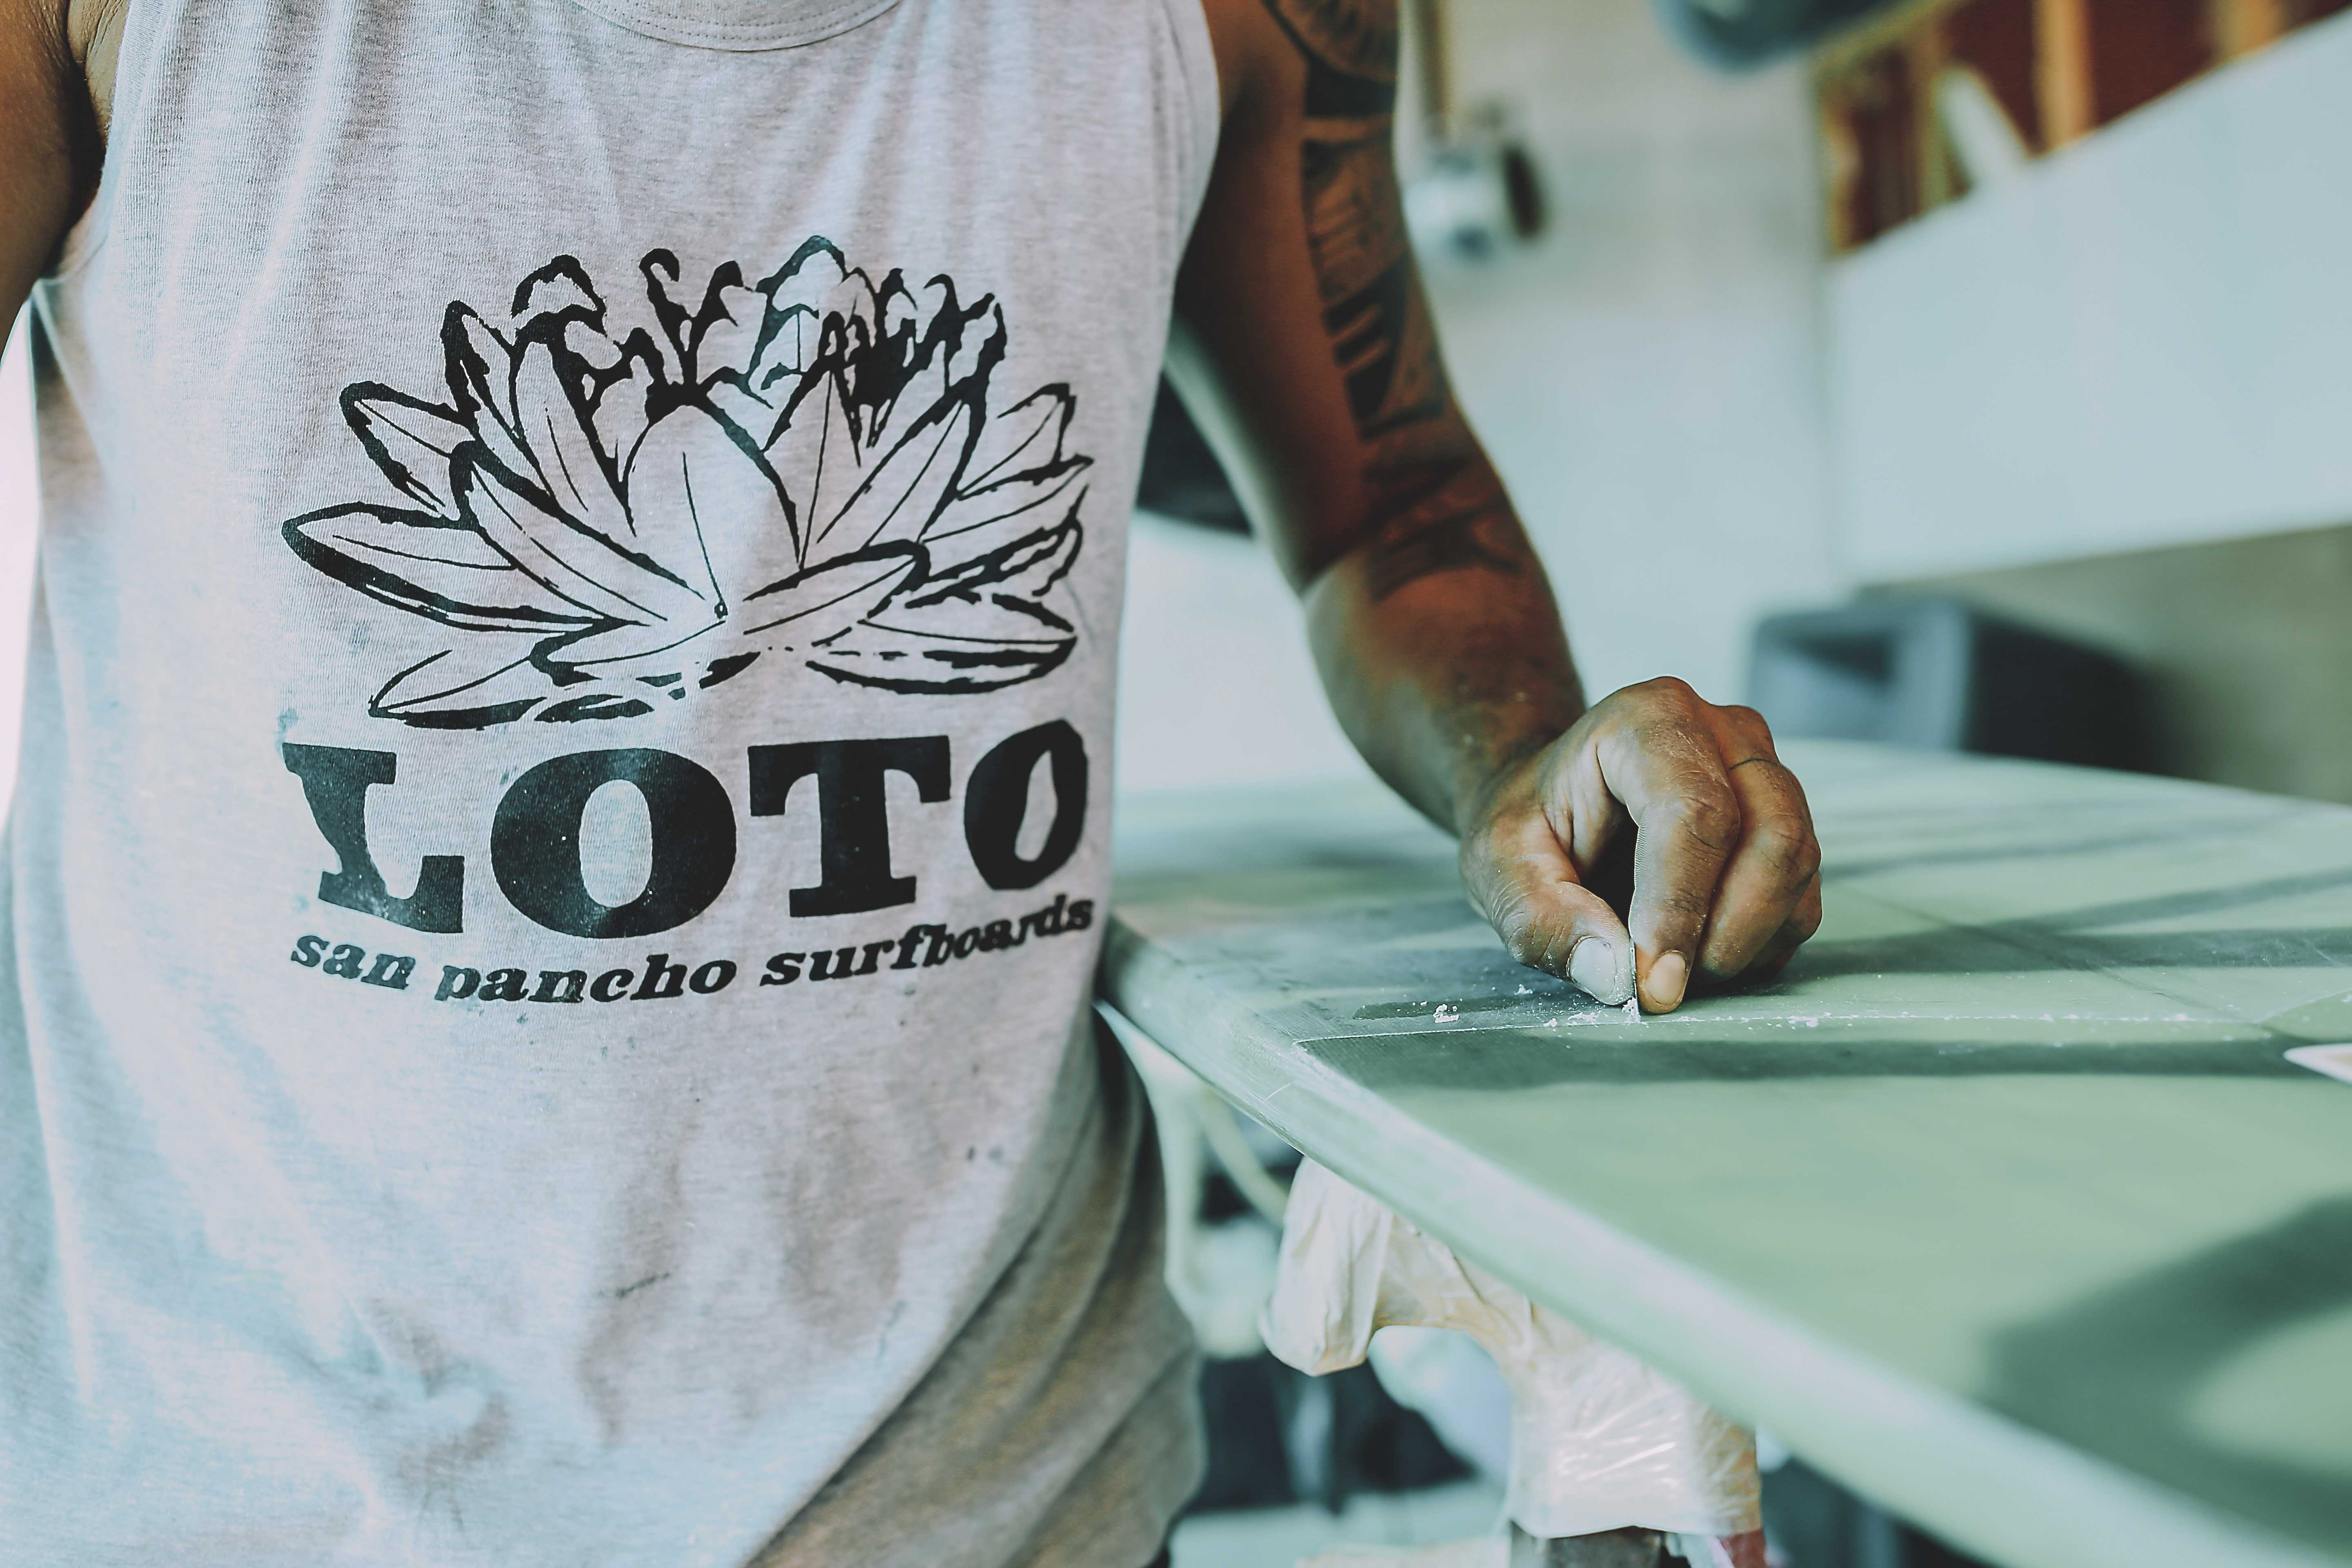 Essentials for the beach created by local talent, lotosurfboards